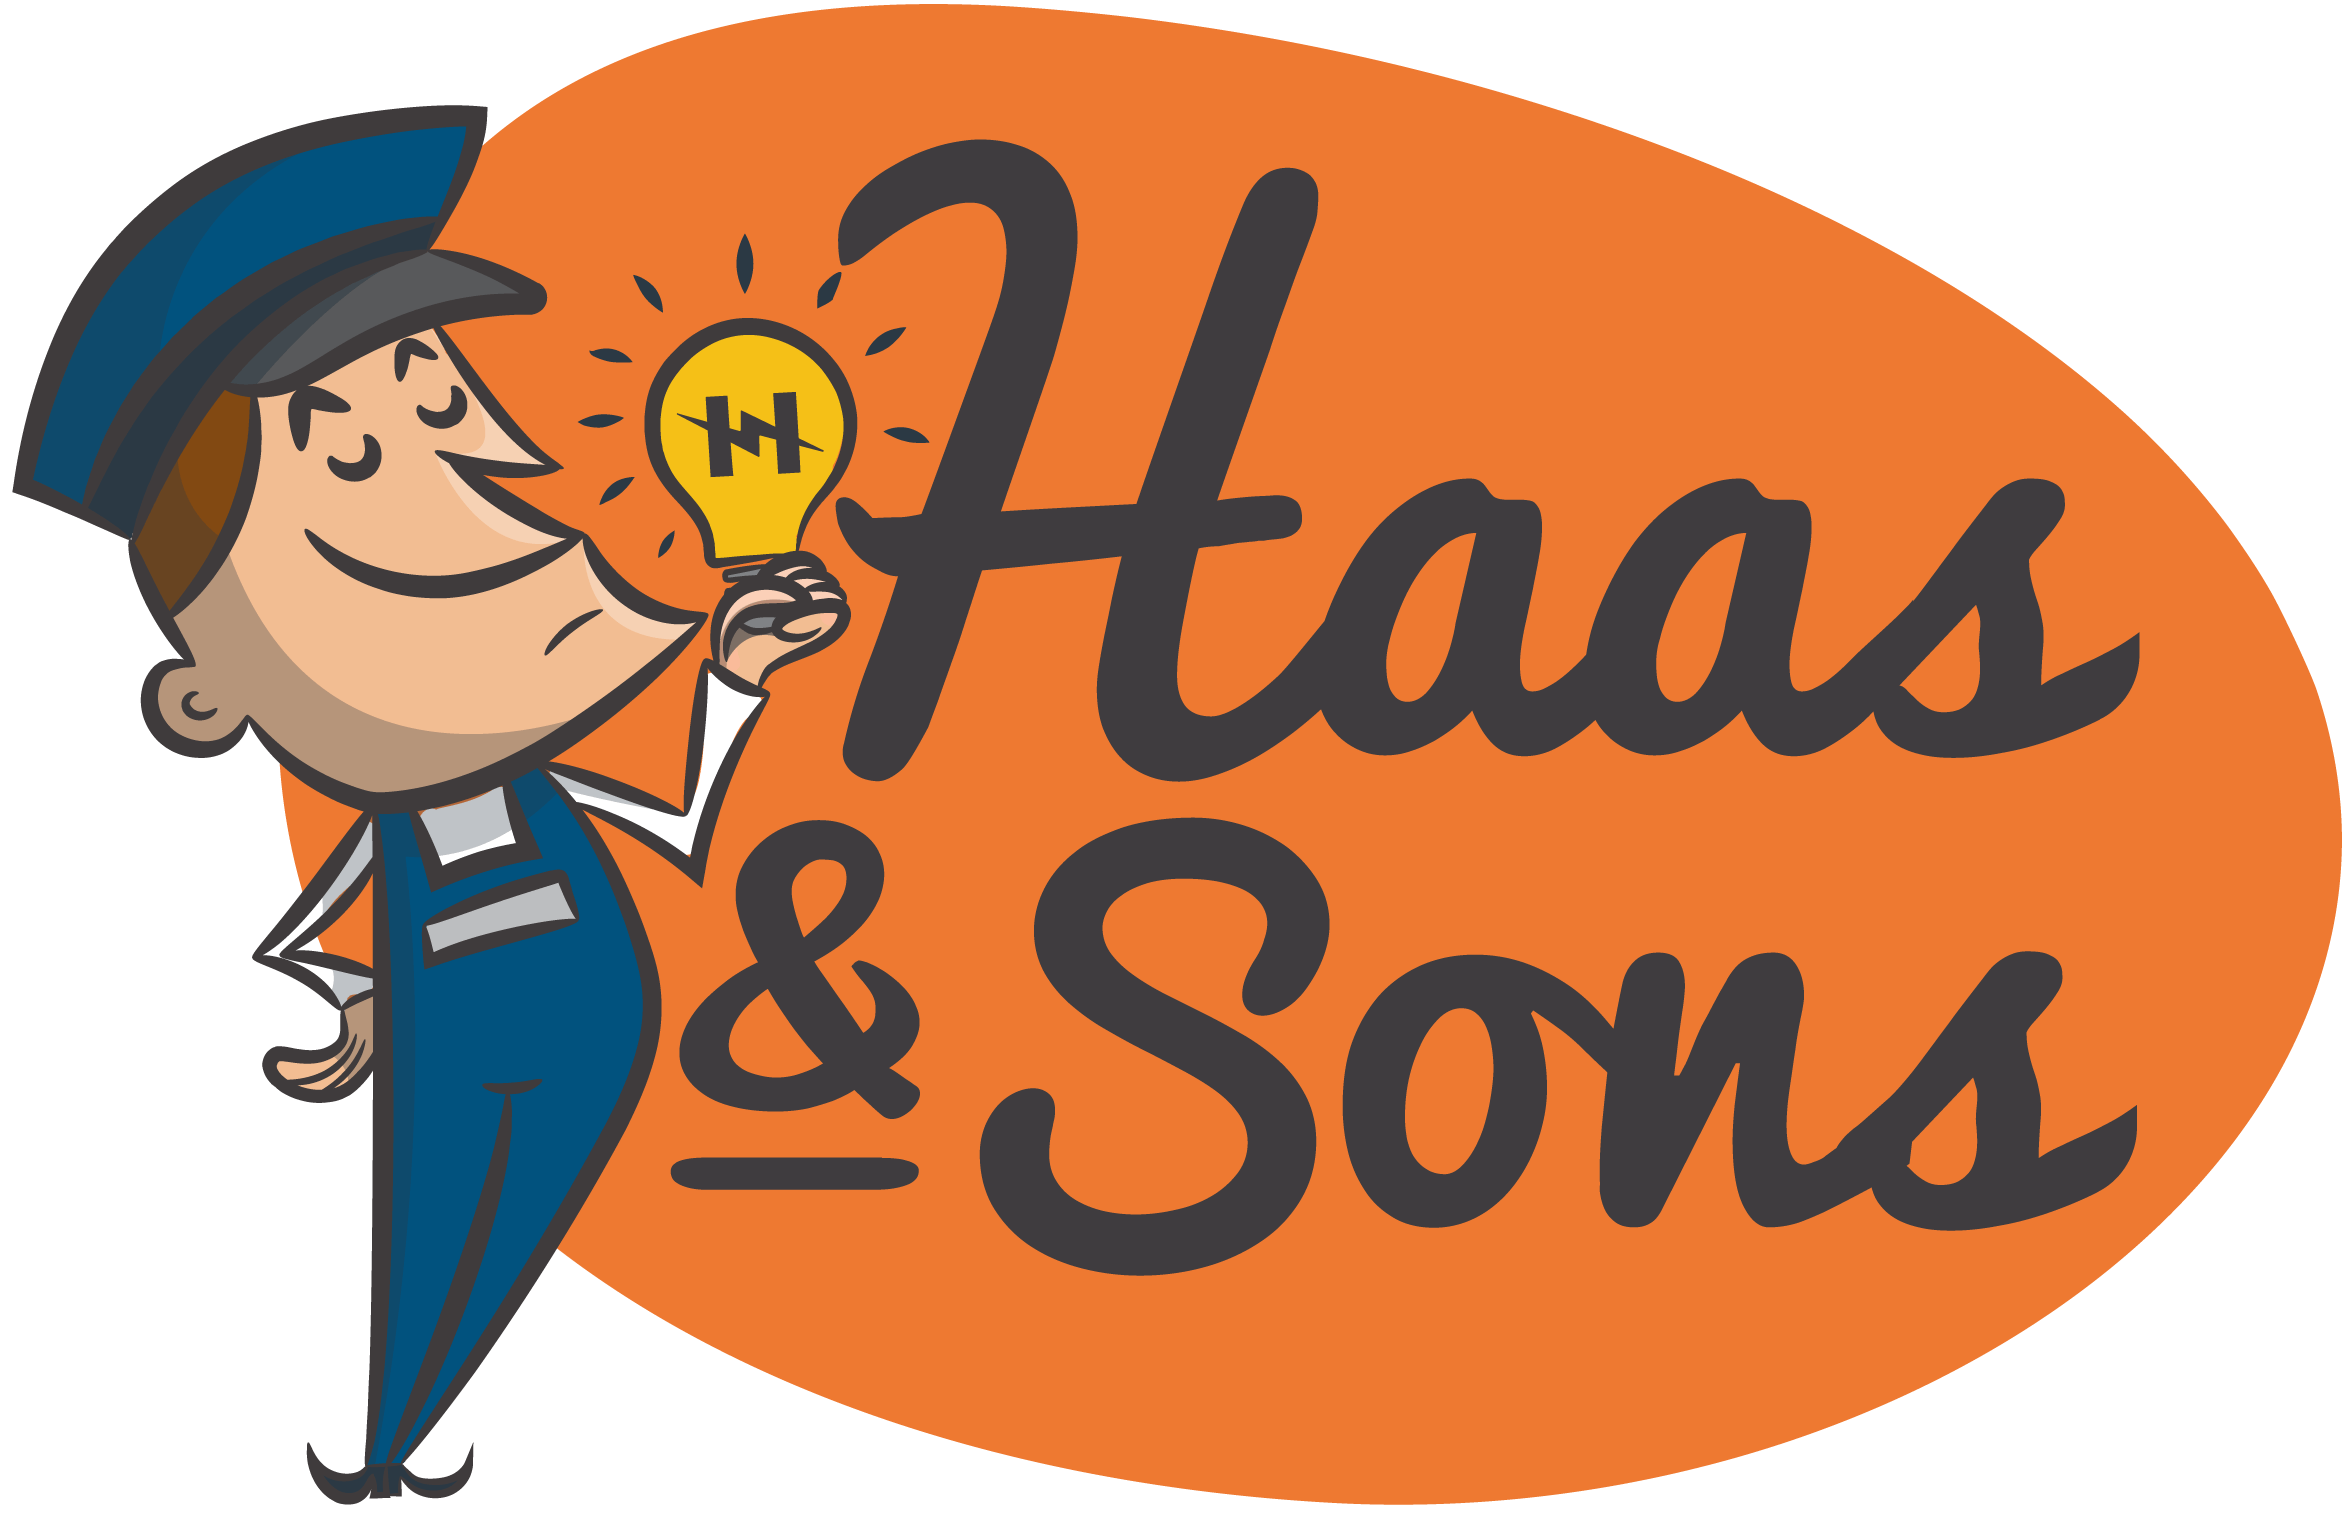 Haas sons call now. Electrical clipart electrical repair